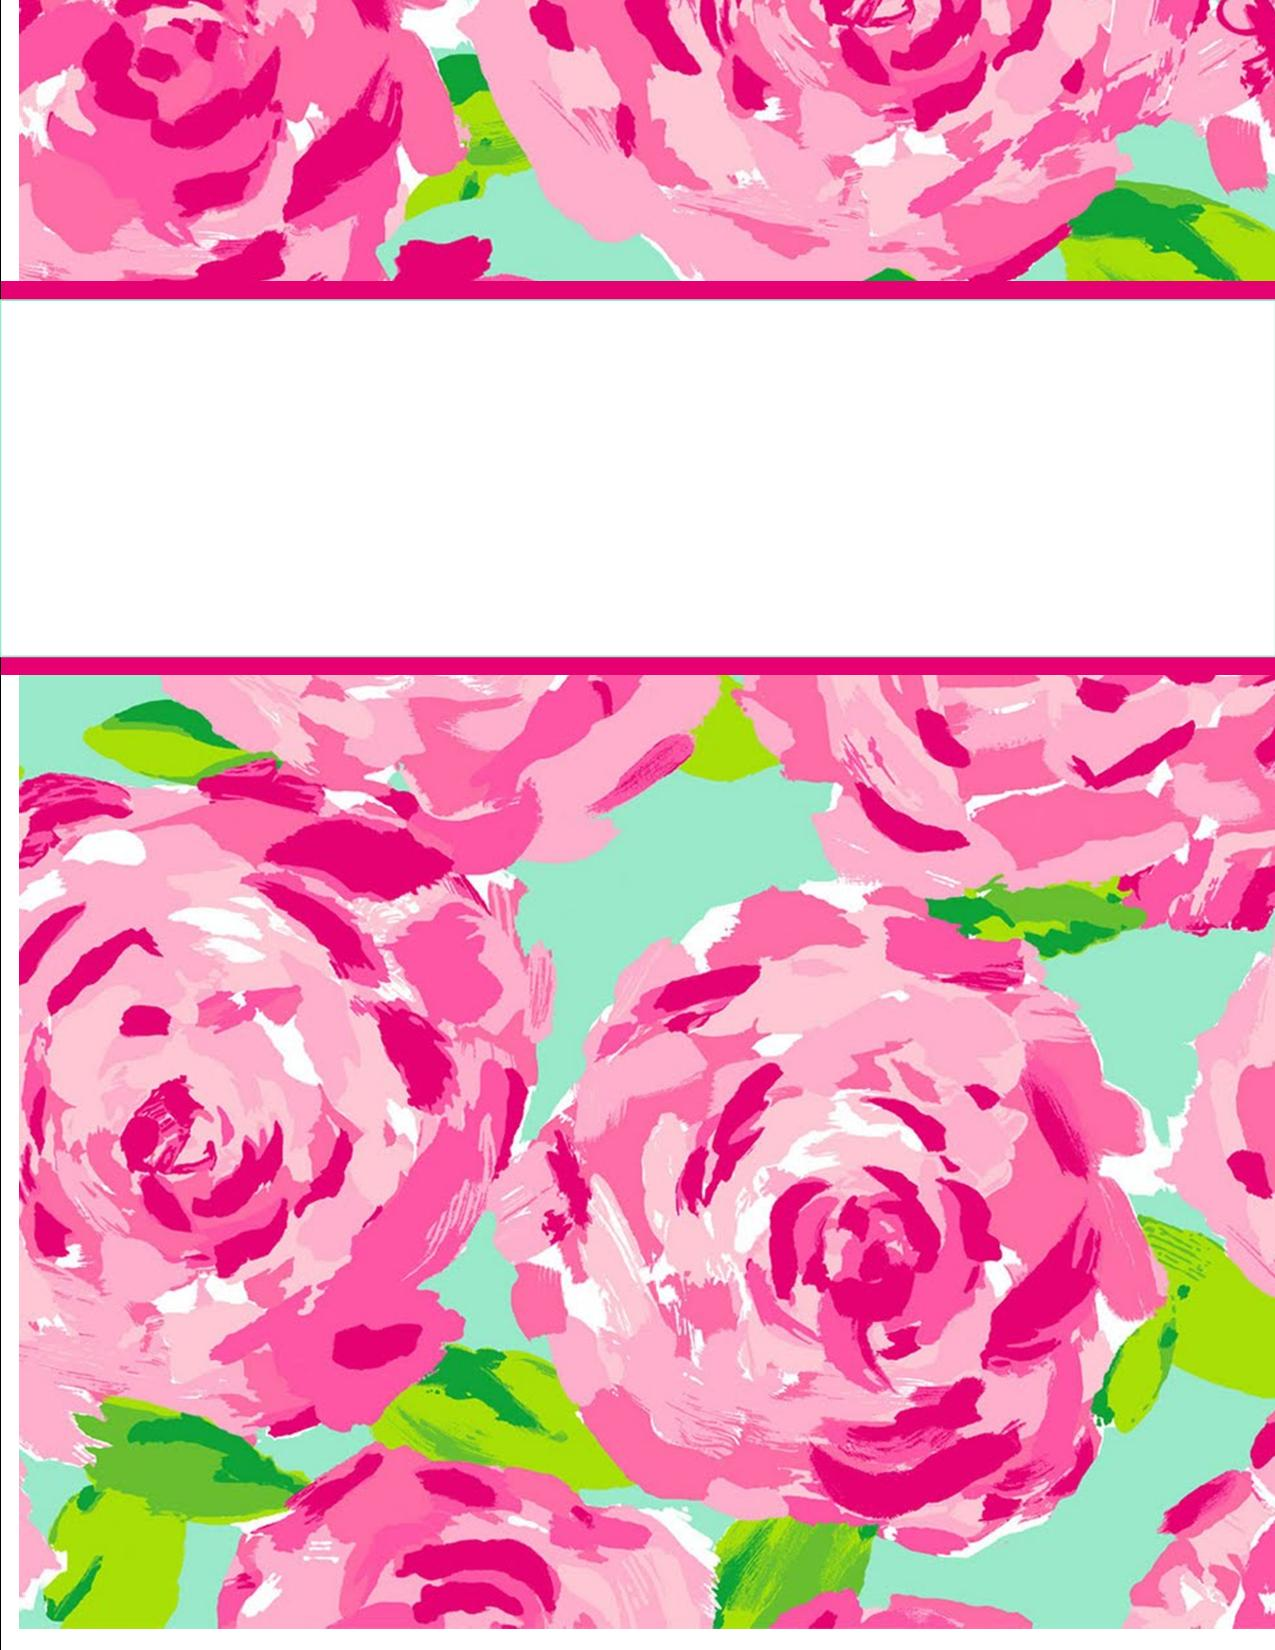 5 Images of Lily Binder Free Printables